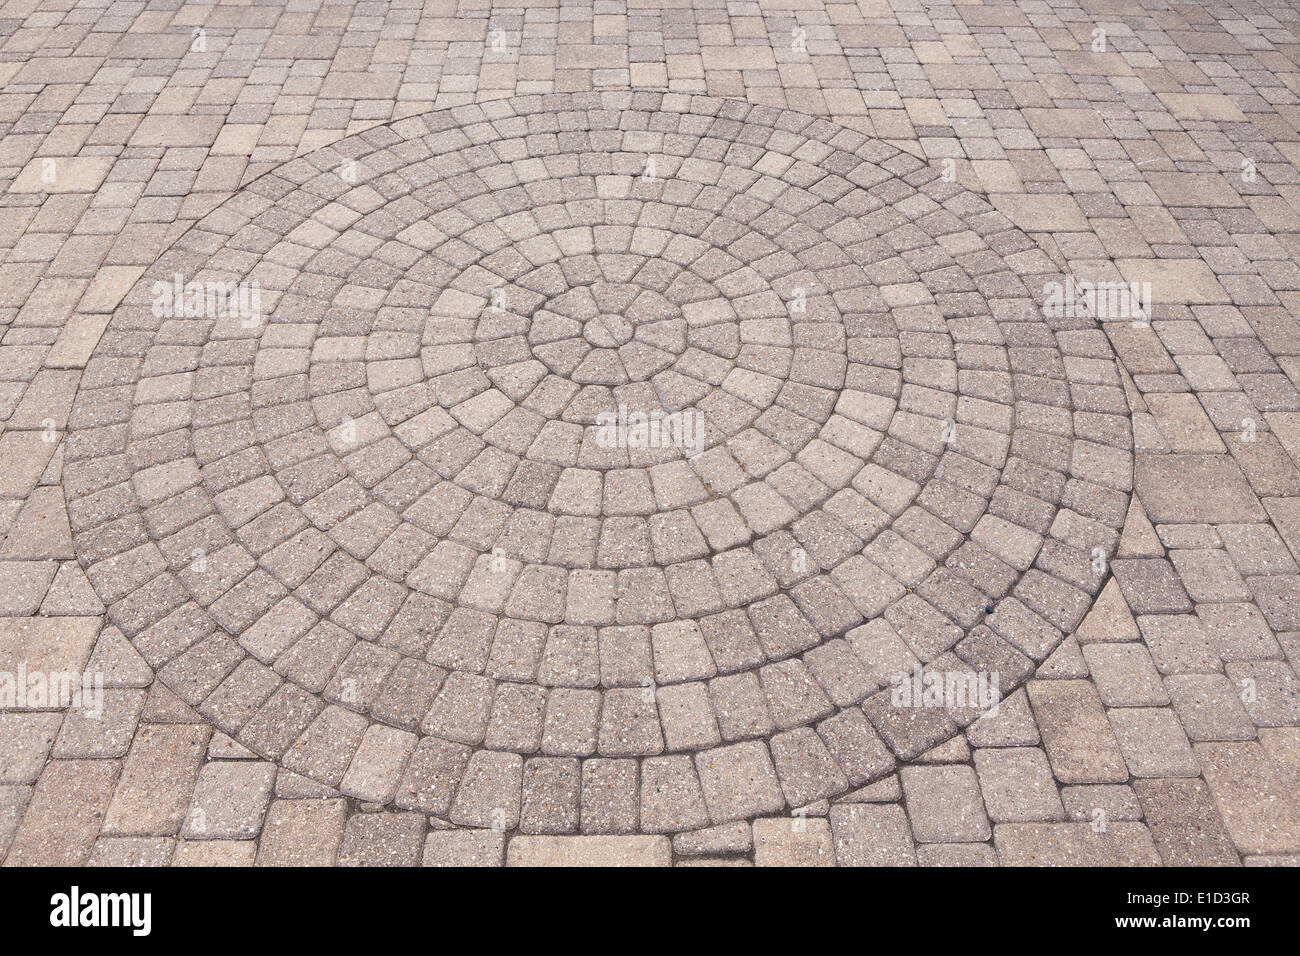 Architectural Background Of An Ornamental Pattern In Outdoor Patio